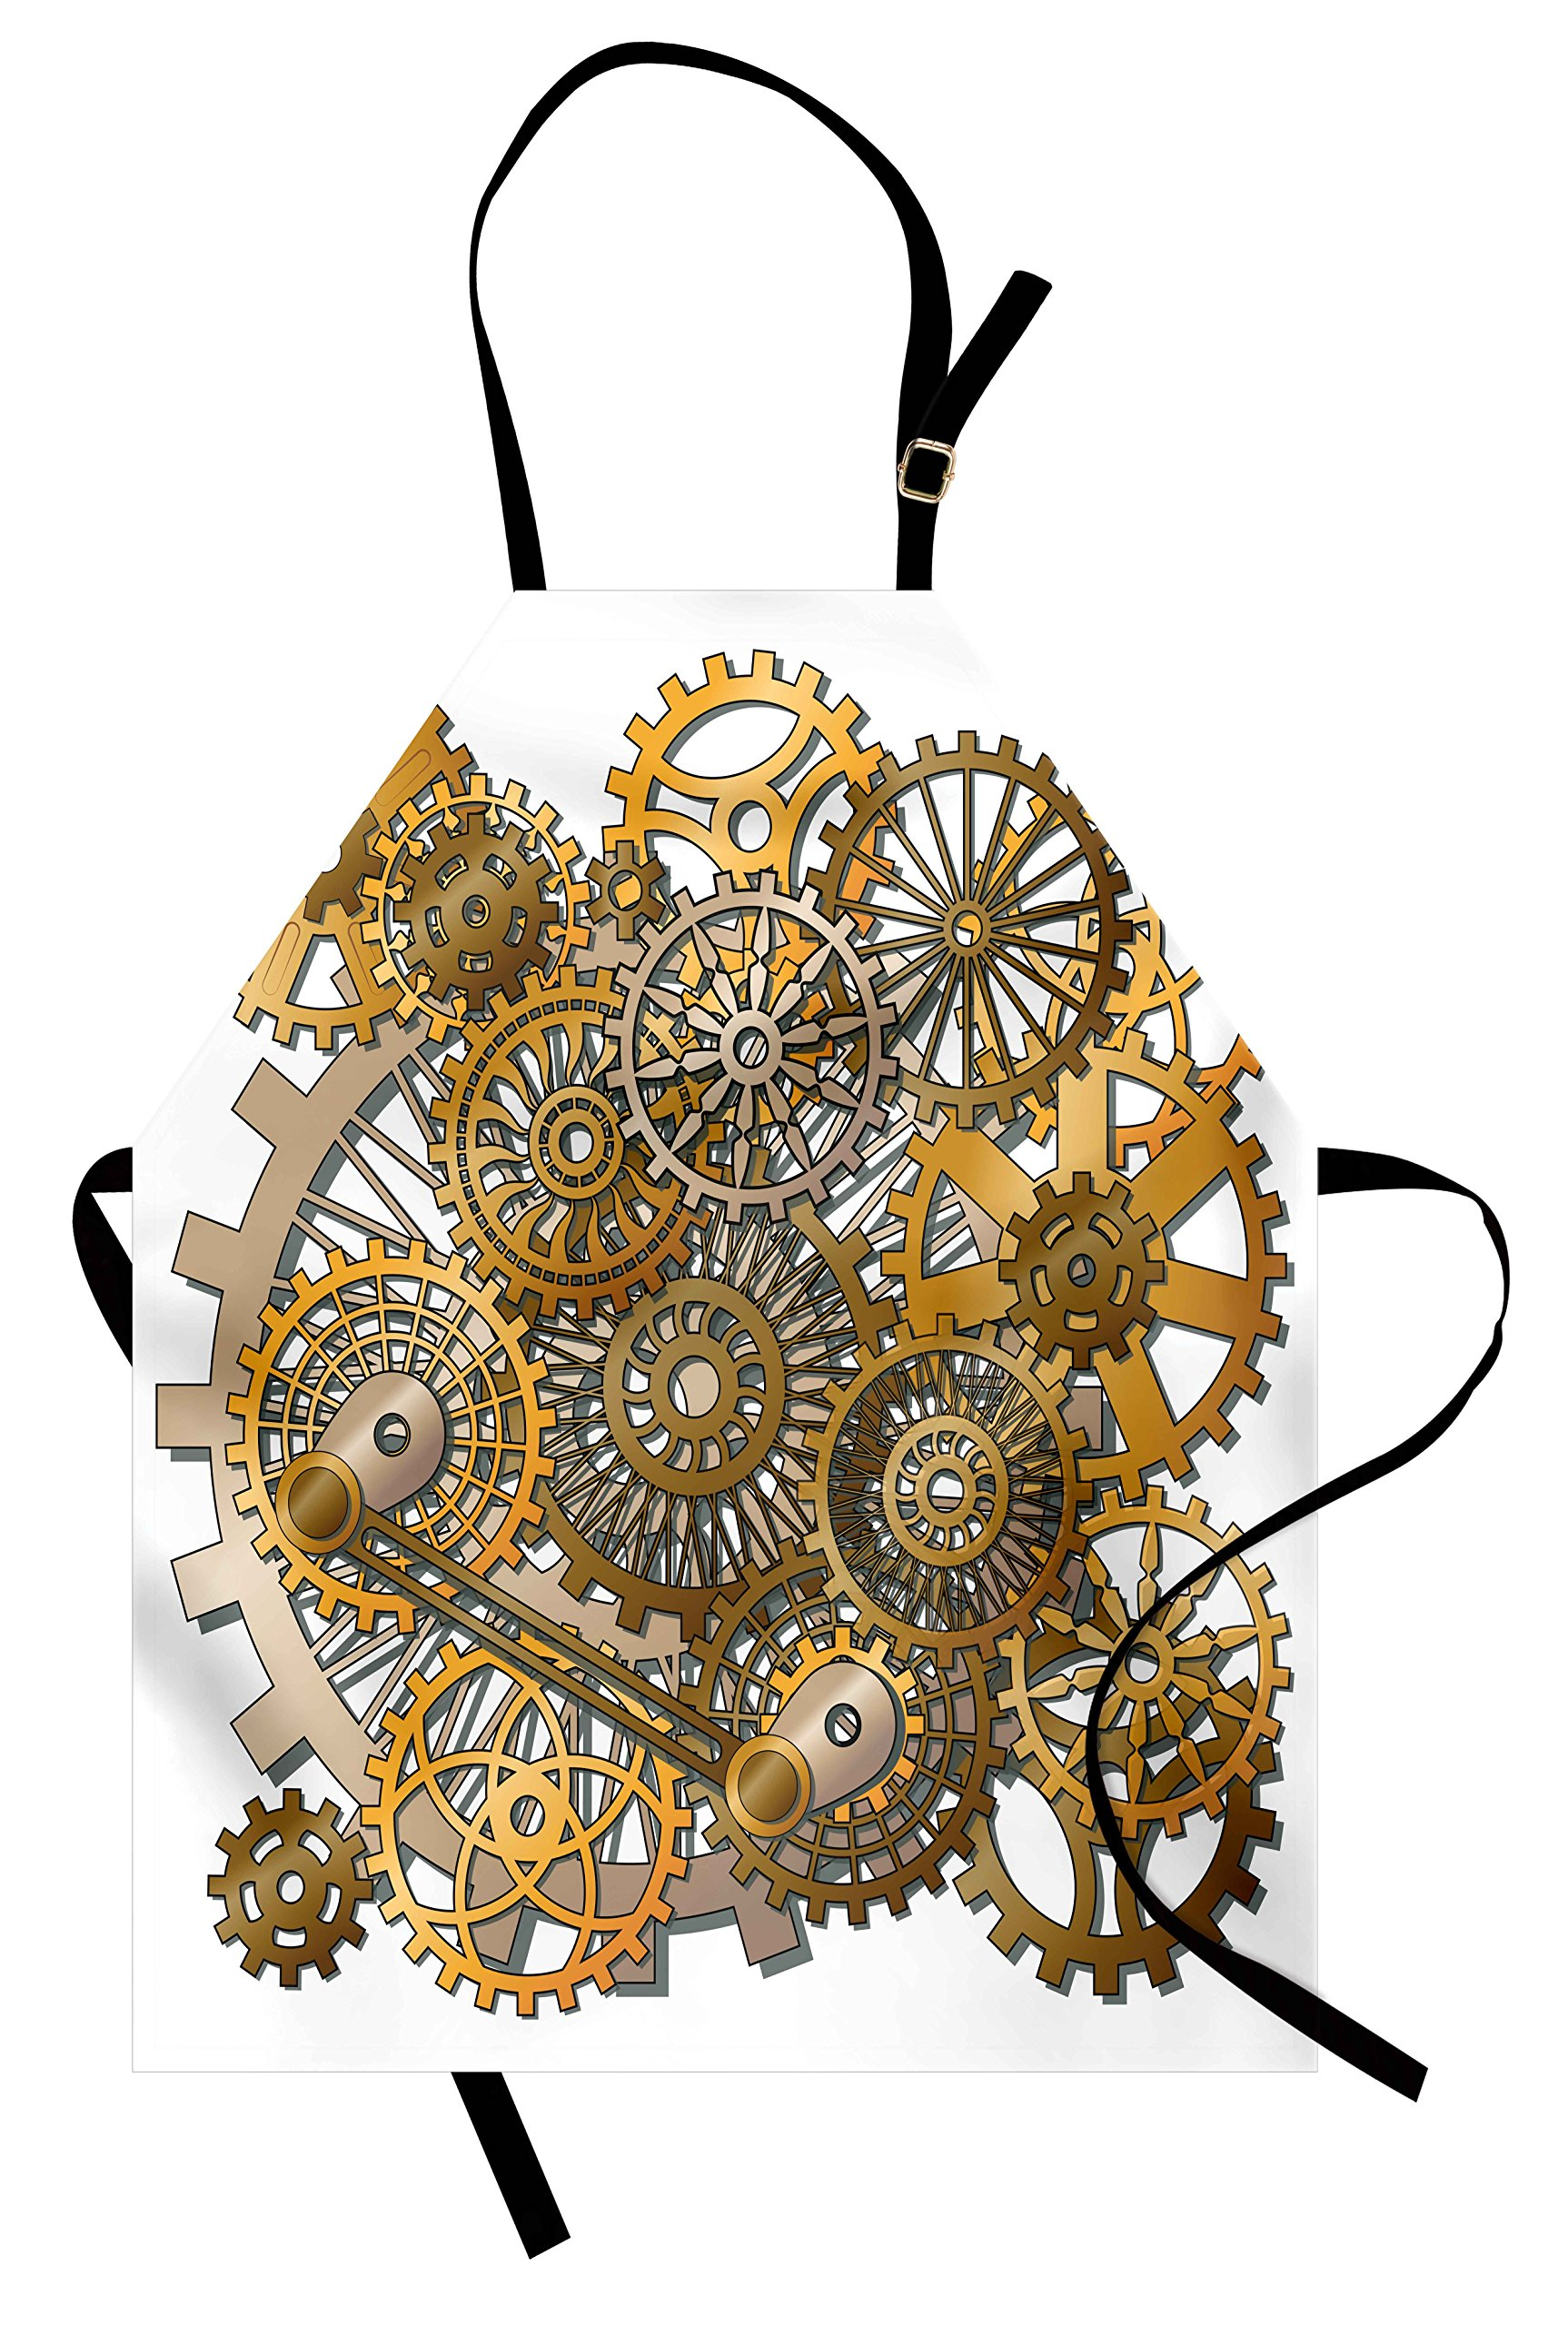 Ambesonne Clock Apron, The Gears in The Style of Steampunk Mechanical Design Engineering Theme Print, Unisex Kitchen Bib Apron with Adjustable Neck for Cooking Baking Gardening, Gold and Brown